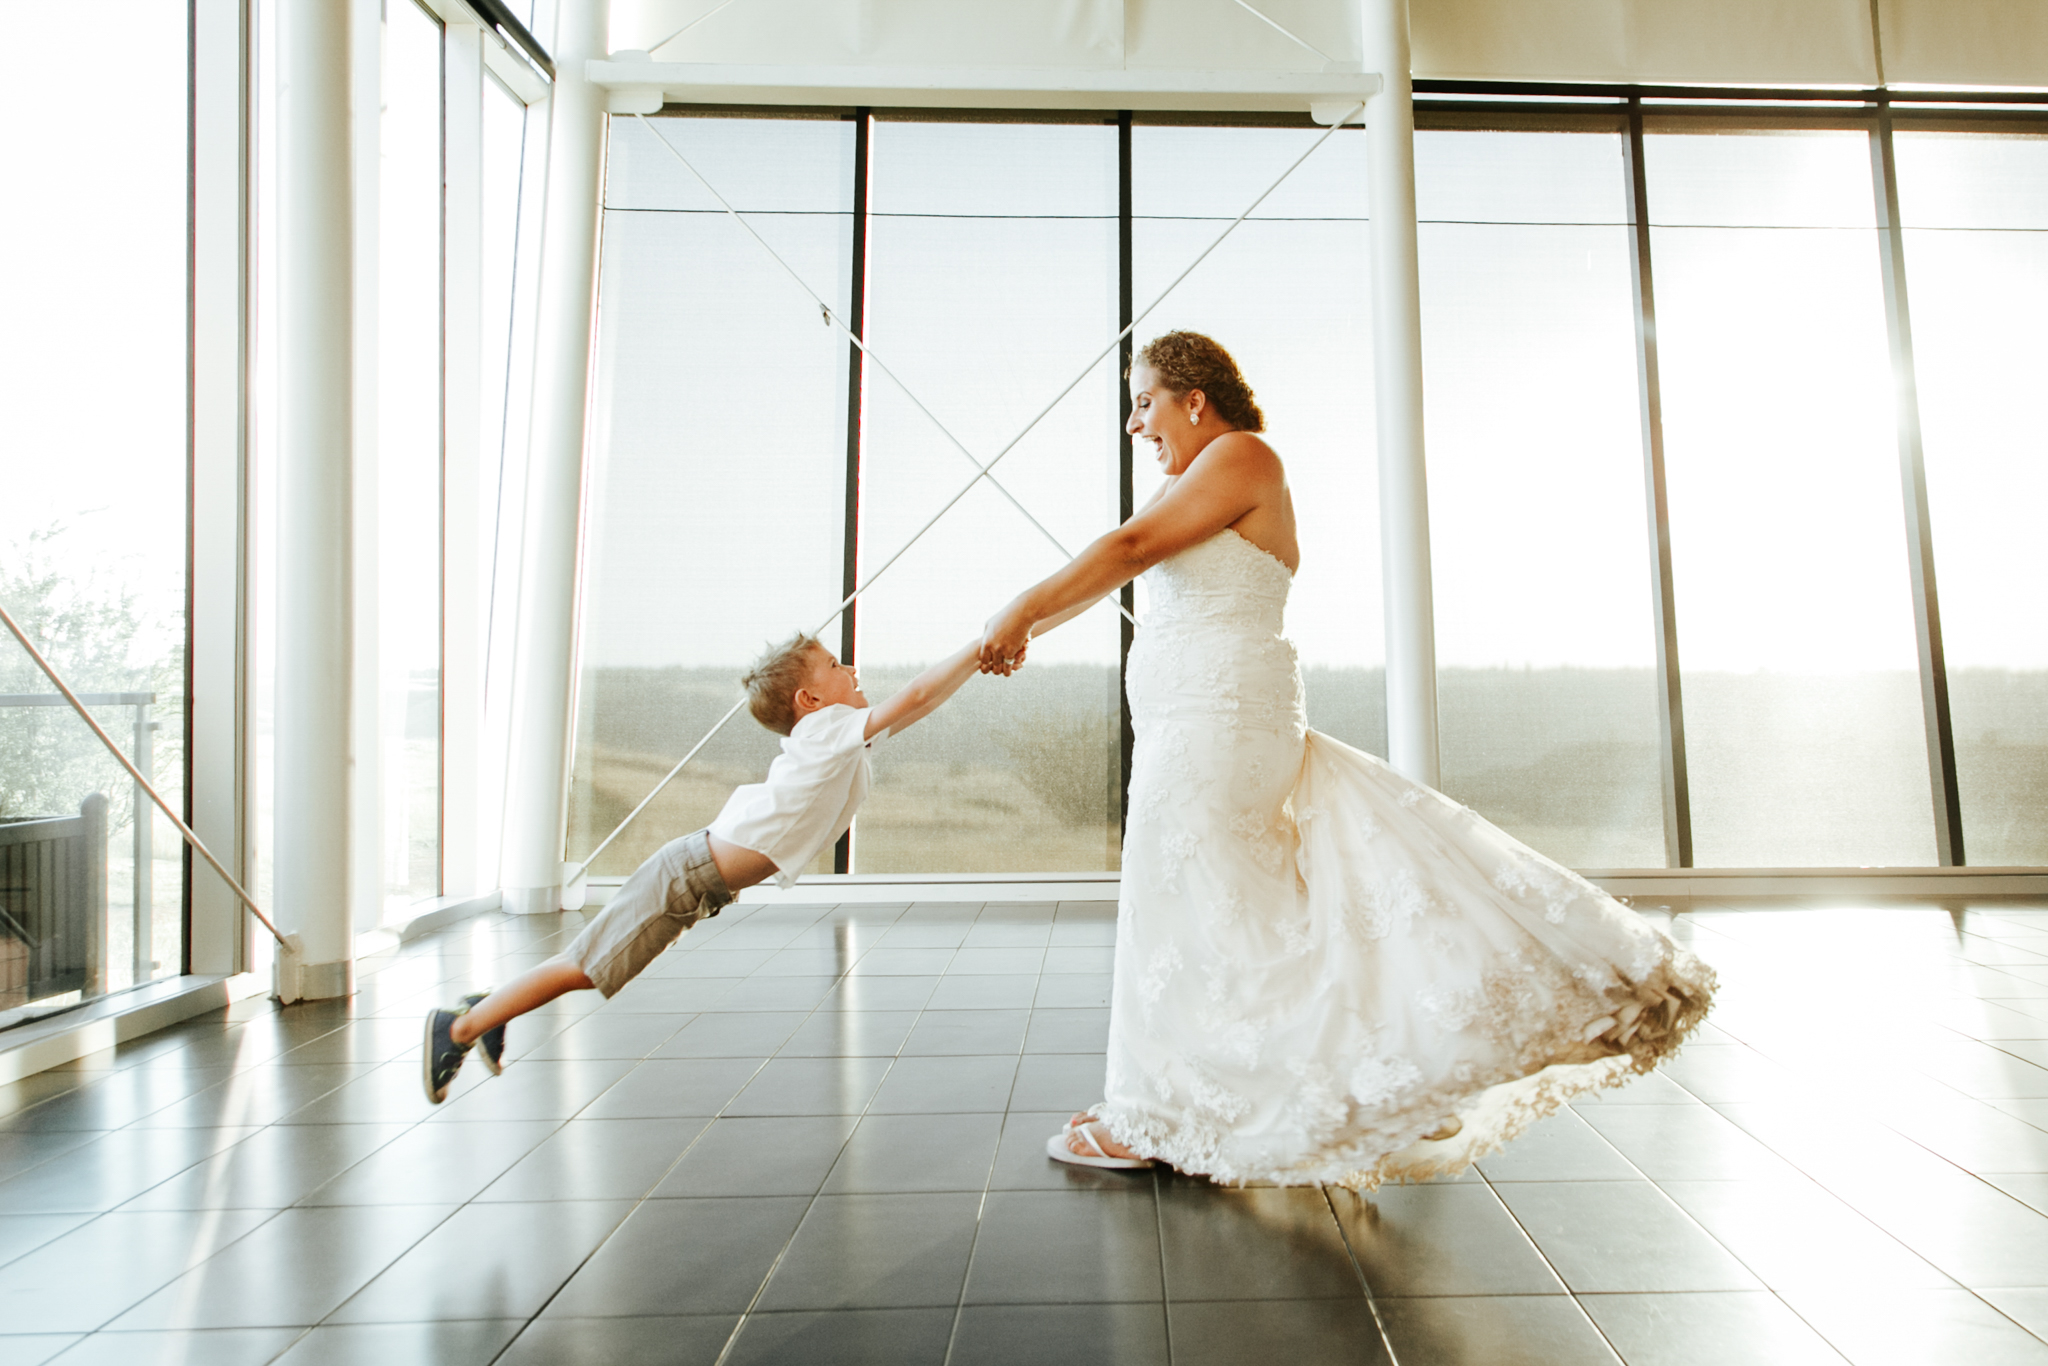 lethbridge-wedding-photographer-love-and-be-loved-photography-trent-danielle-galt-reception-picture-image-photo-223.jpg